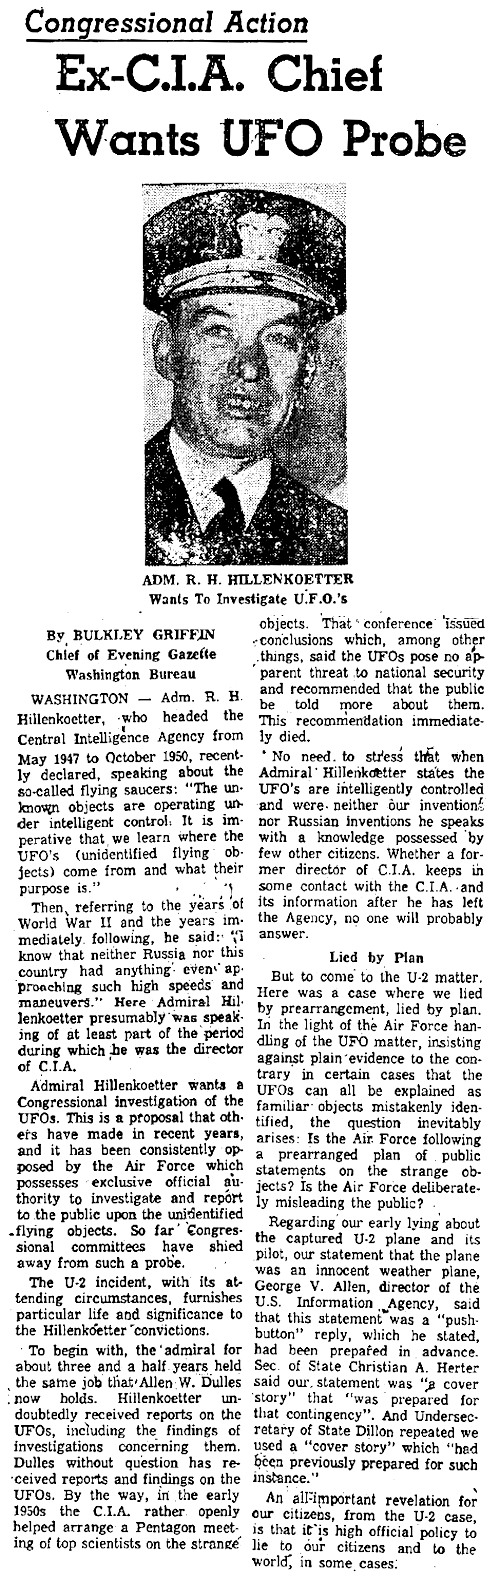 Ex-CIA Chief Wants UFO Probe - Worcester Gazette (Pt 1) 6-1-1960